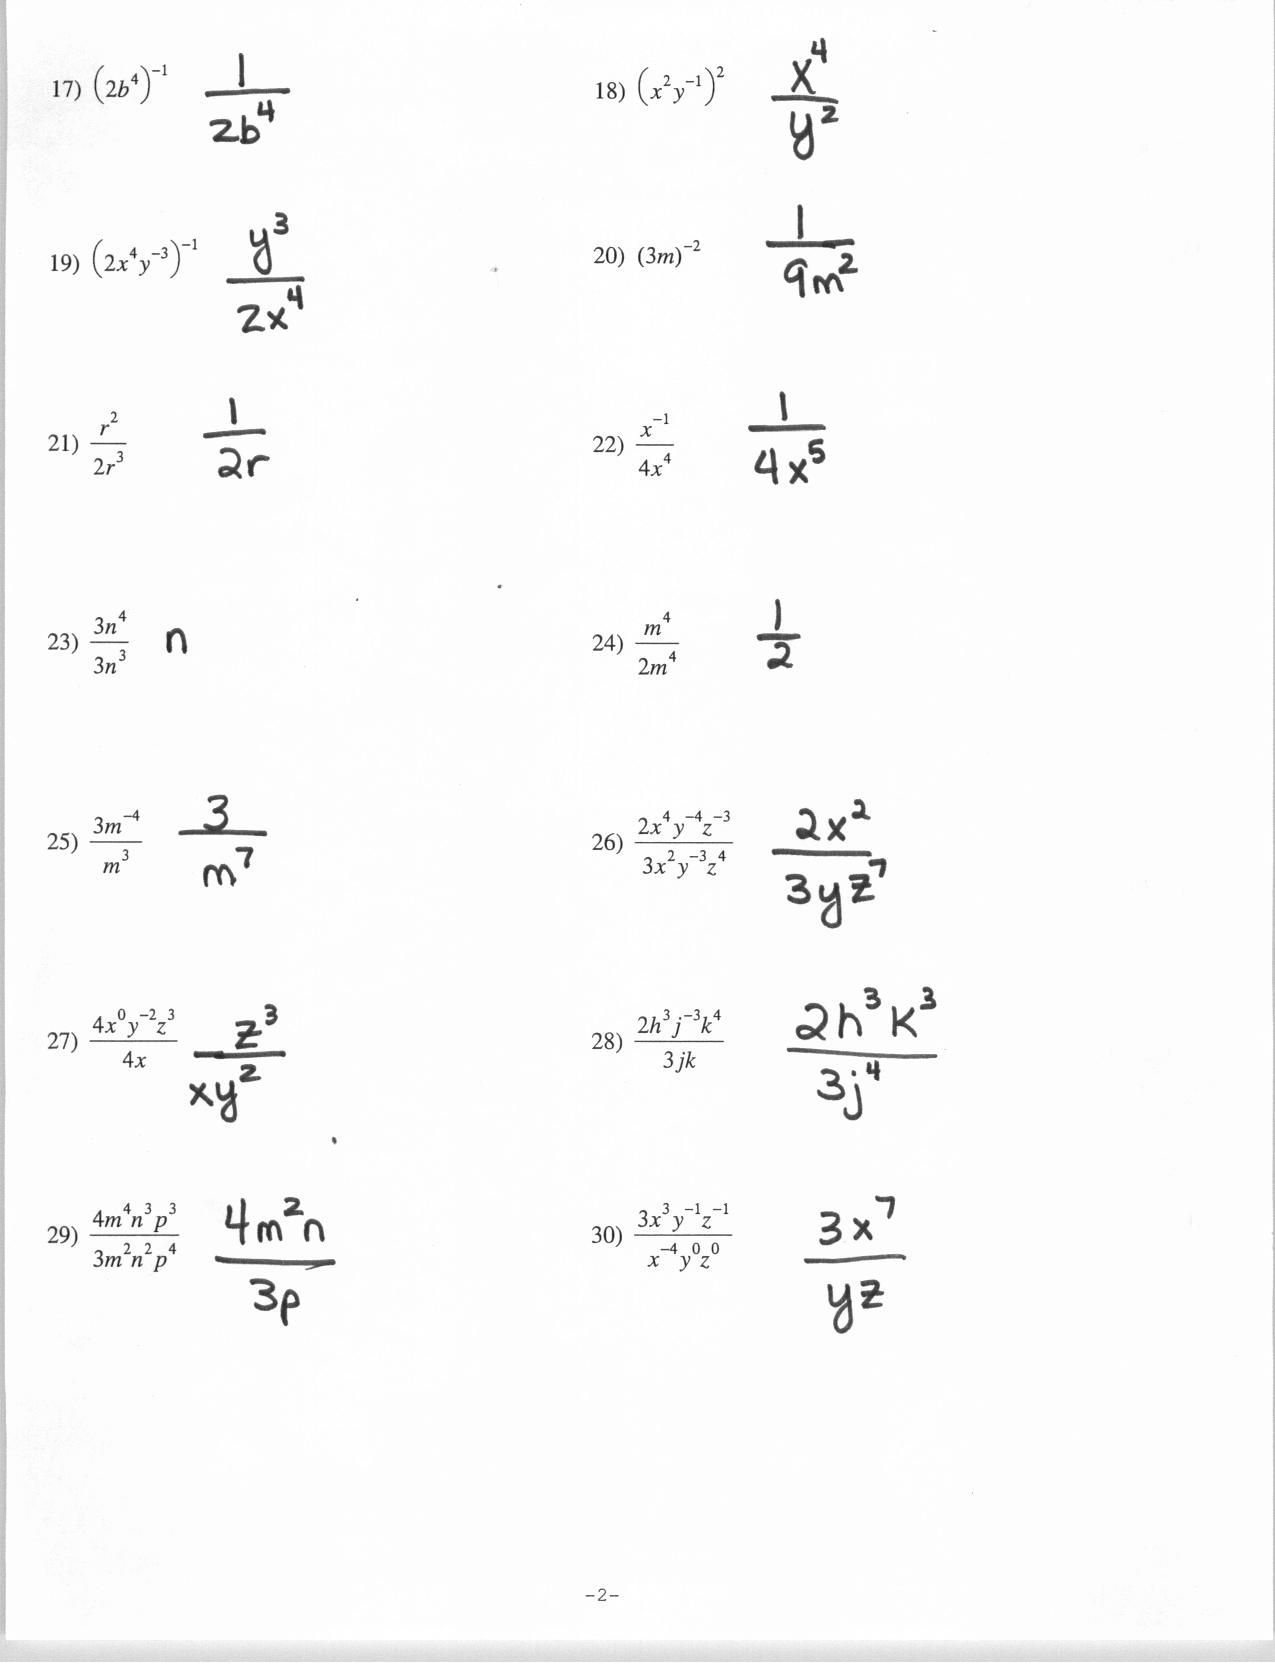 Properties Of Exponents Worksheet And Answers   Kids Activities